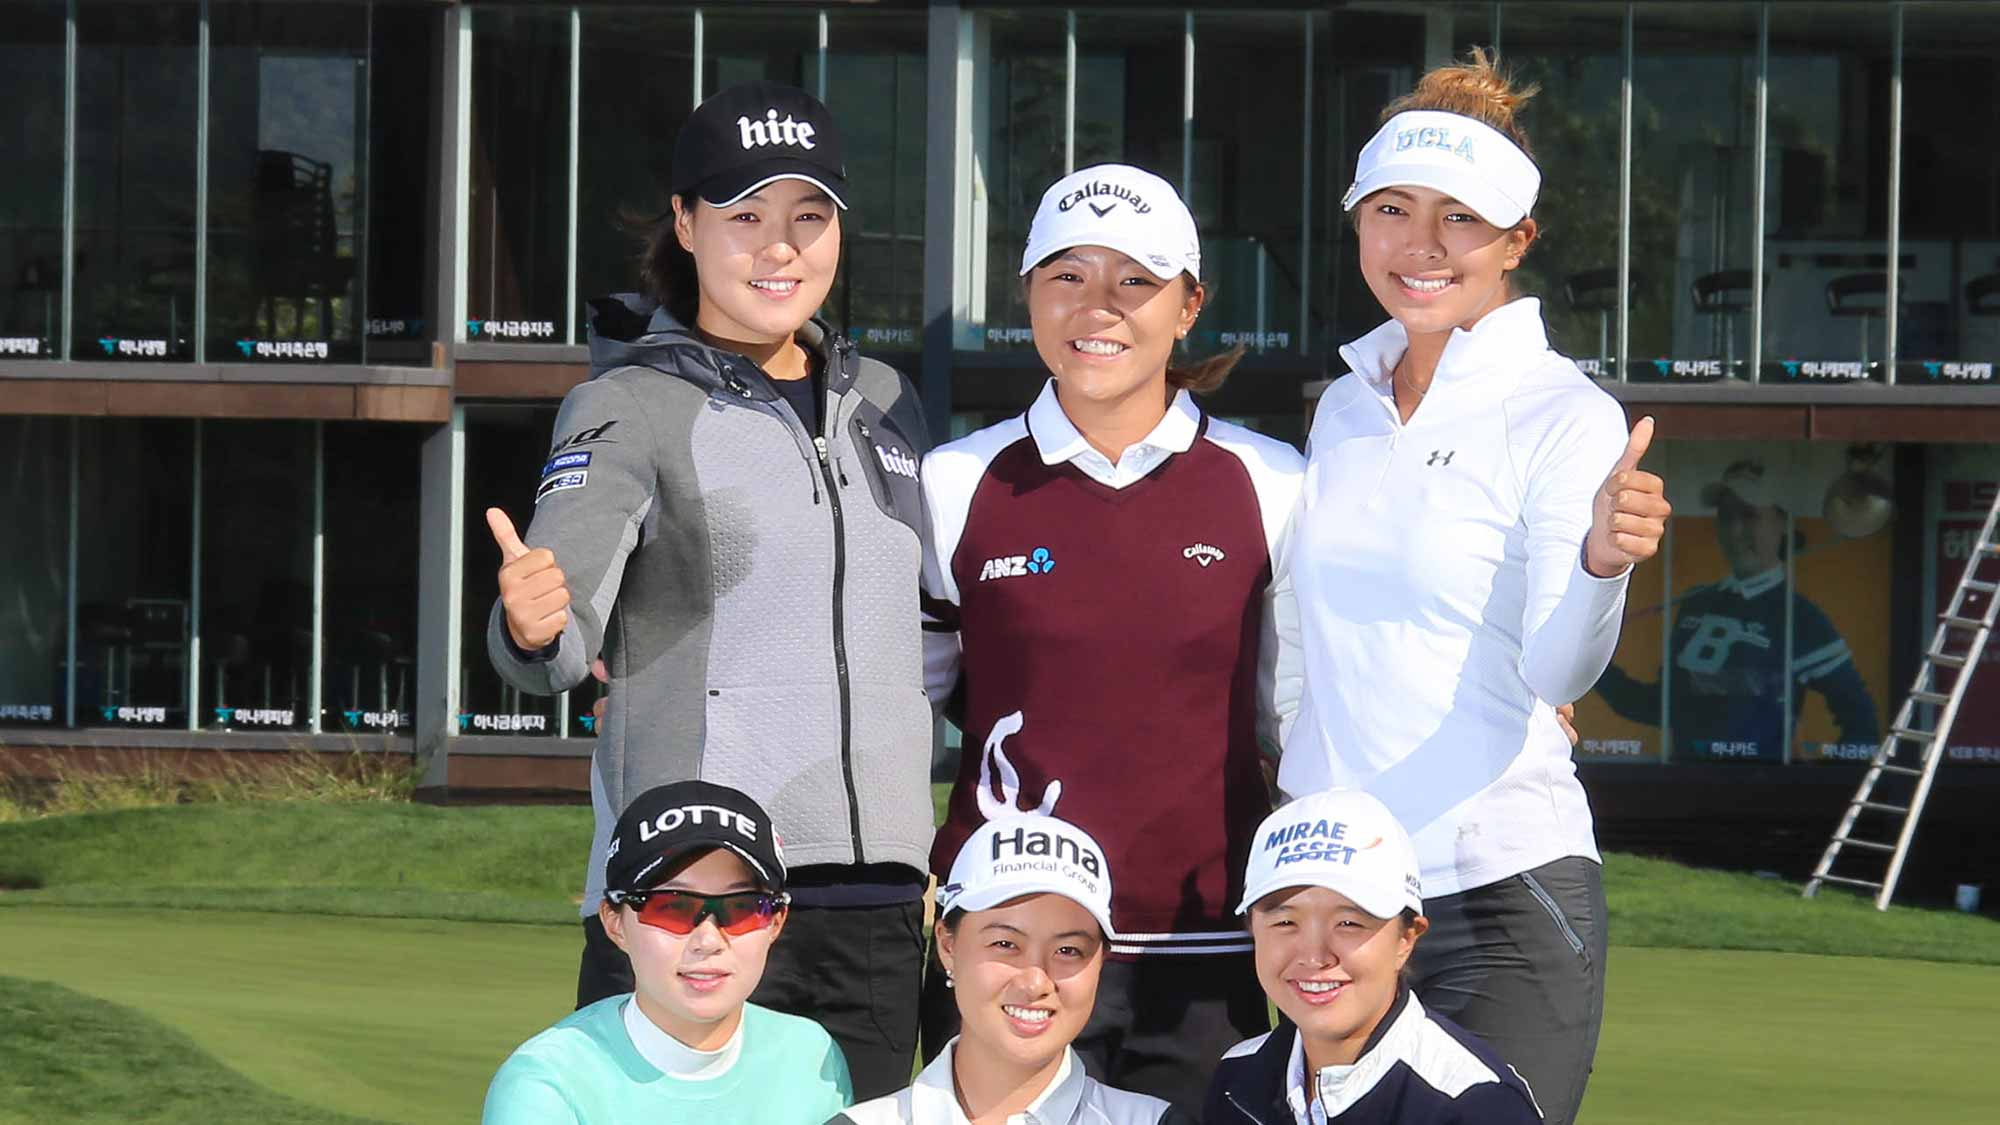 Clockwise: In Gee Chun, Lydia Ko, Alison Lee, Sei Young Kim, Minjee Lee, and Hyo Joo Kim During Photocall at LPGA KEB Hana Bank Championship